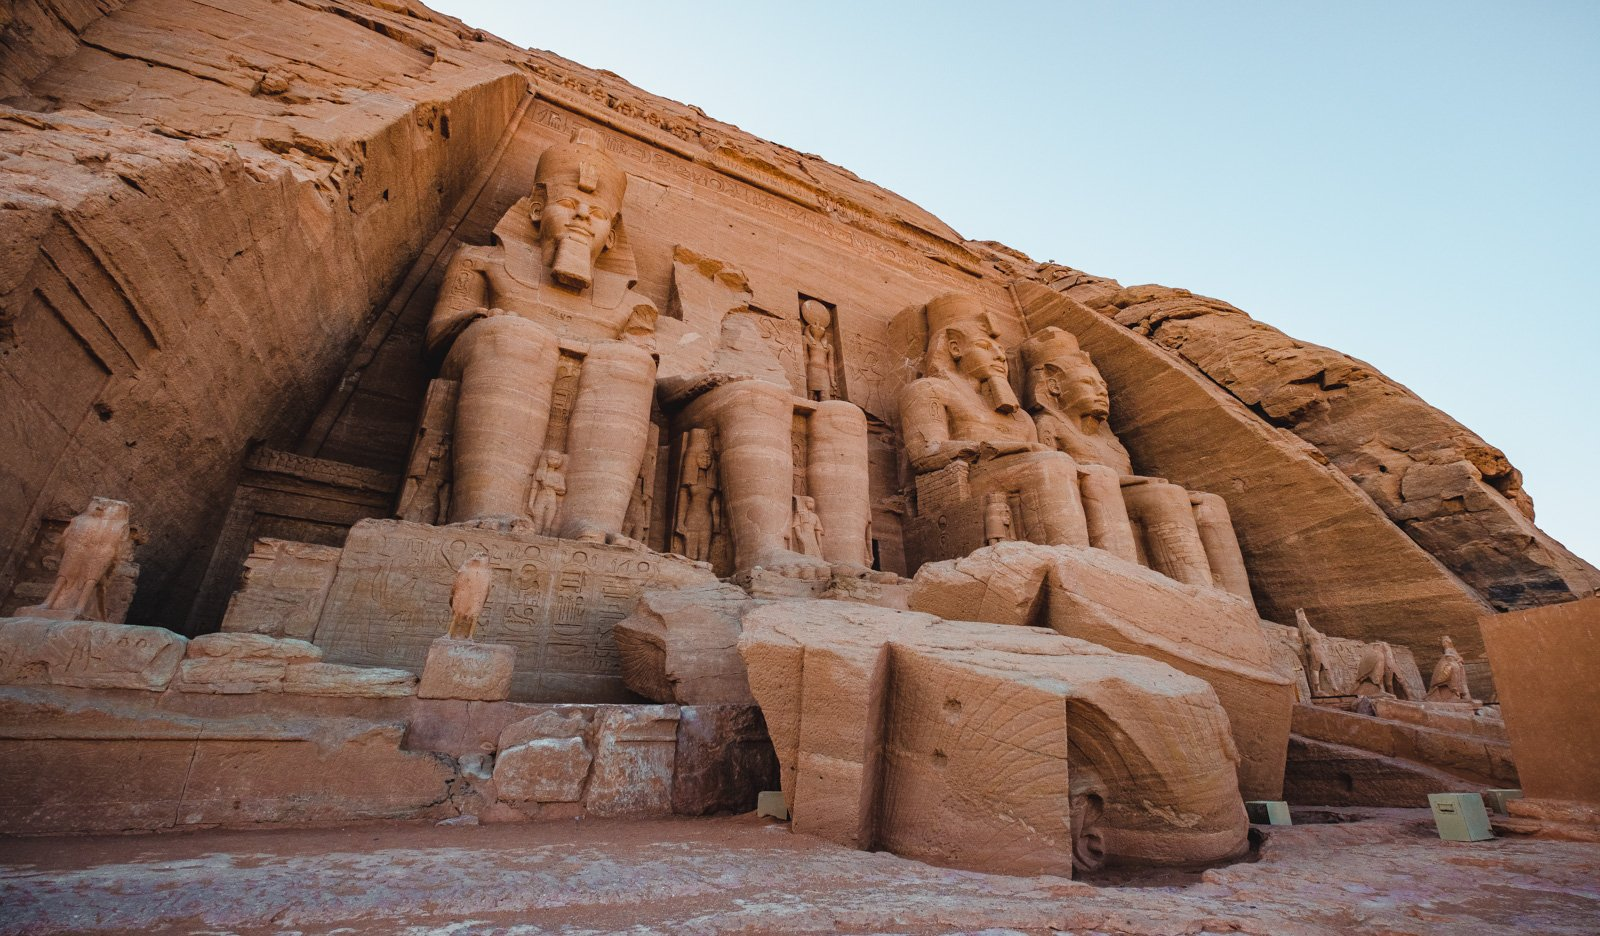 Ancient stone monuments in the Egyptian desert